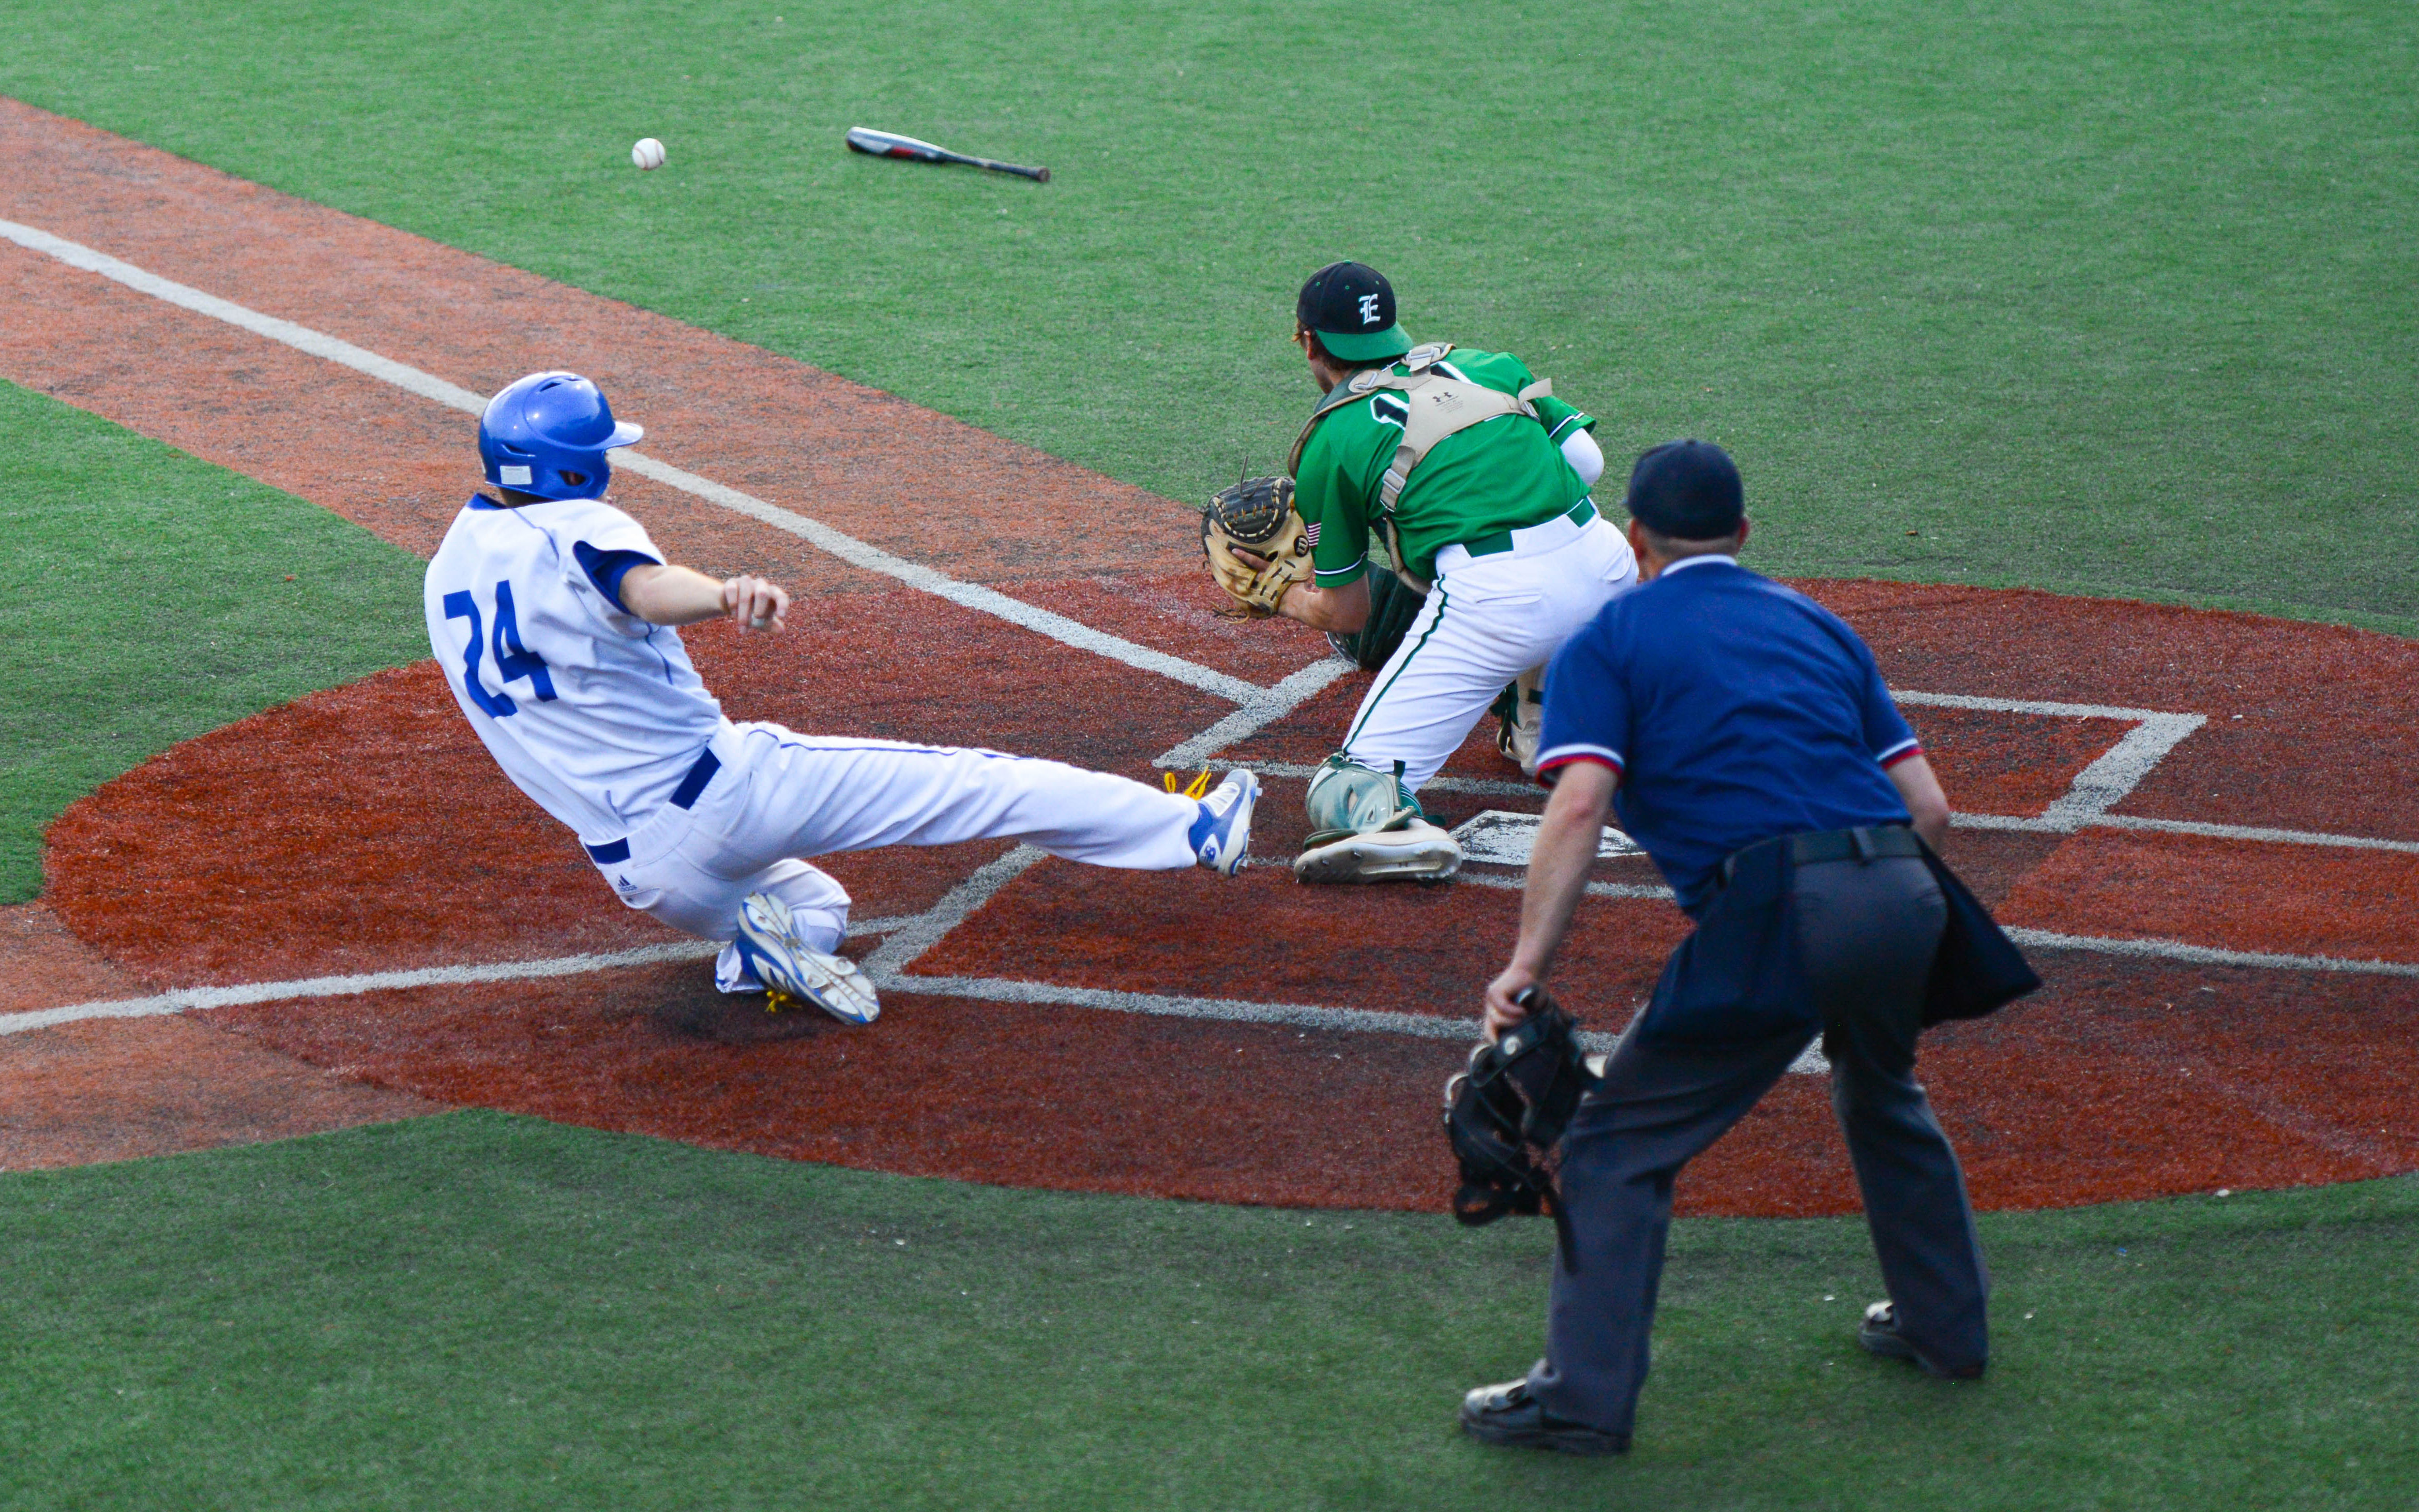 A Minnetonka base runner slides safely into home during a late-game rally. The Skippers lost to Edina 5-3. Photo by Carter Jones, SportsEngine